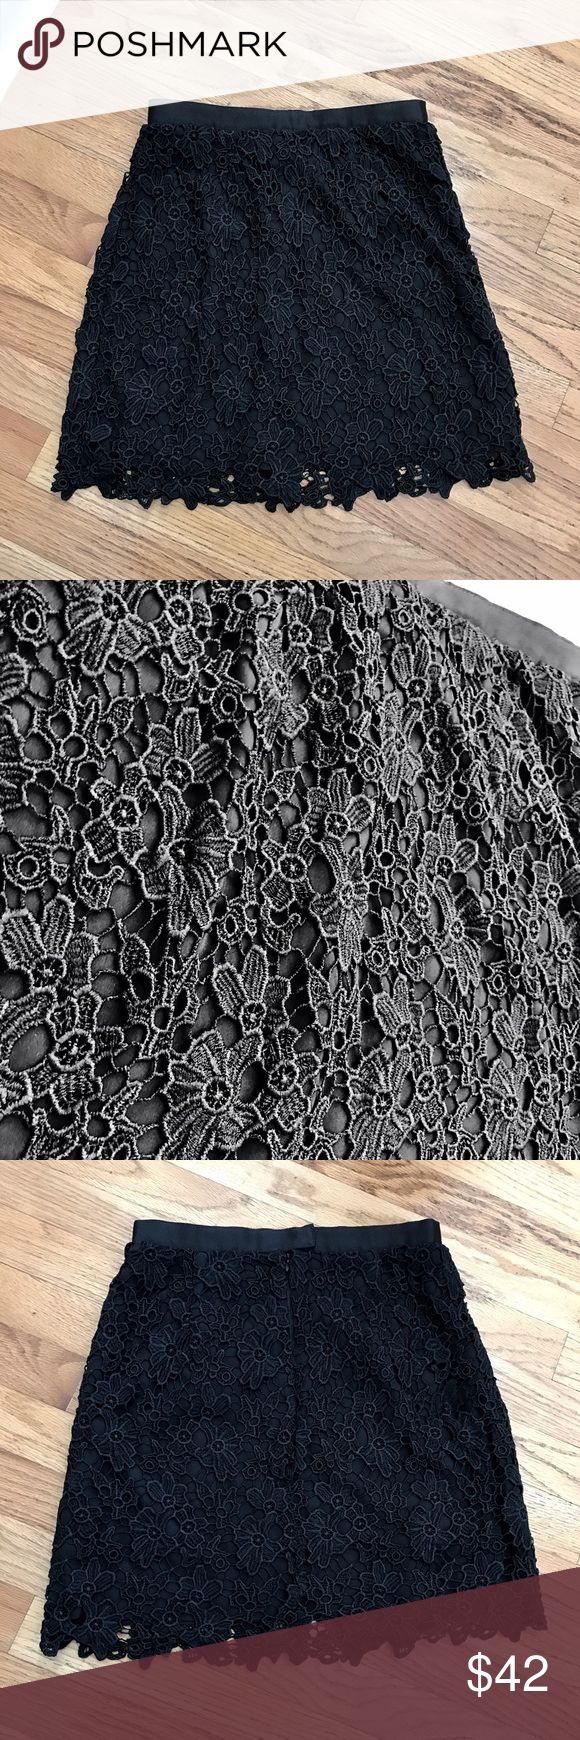 NWT French Connection Mini Floral Lace Skirt sz 2 NWT beautiful lace mini skirt! French Connection Skirts Mini